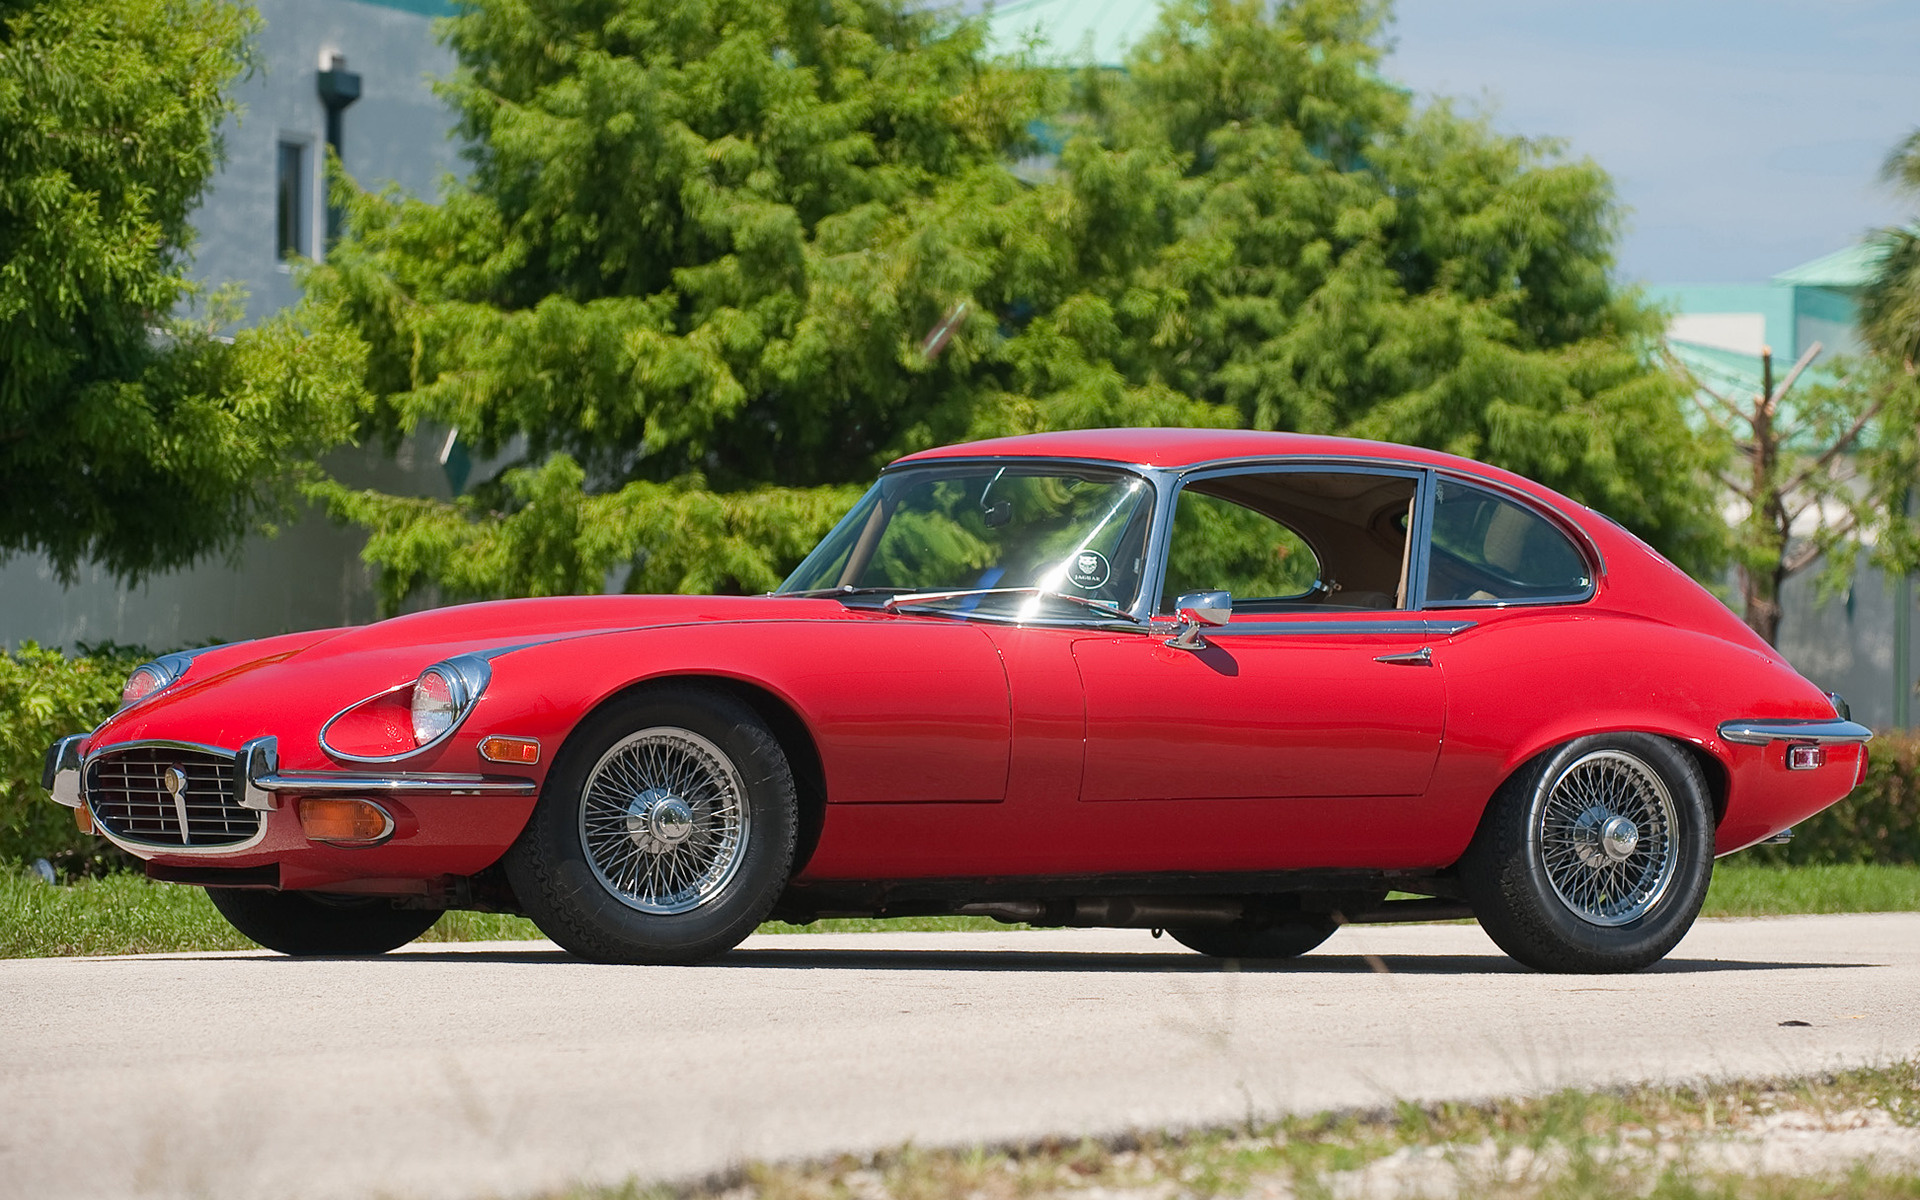 Lexus 7 Seater >> 1971 Jaguar E-Type V12 2+2 Coupe (US) - Wallpapers and HD Images | Car Pixel